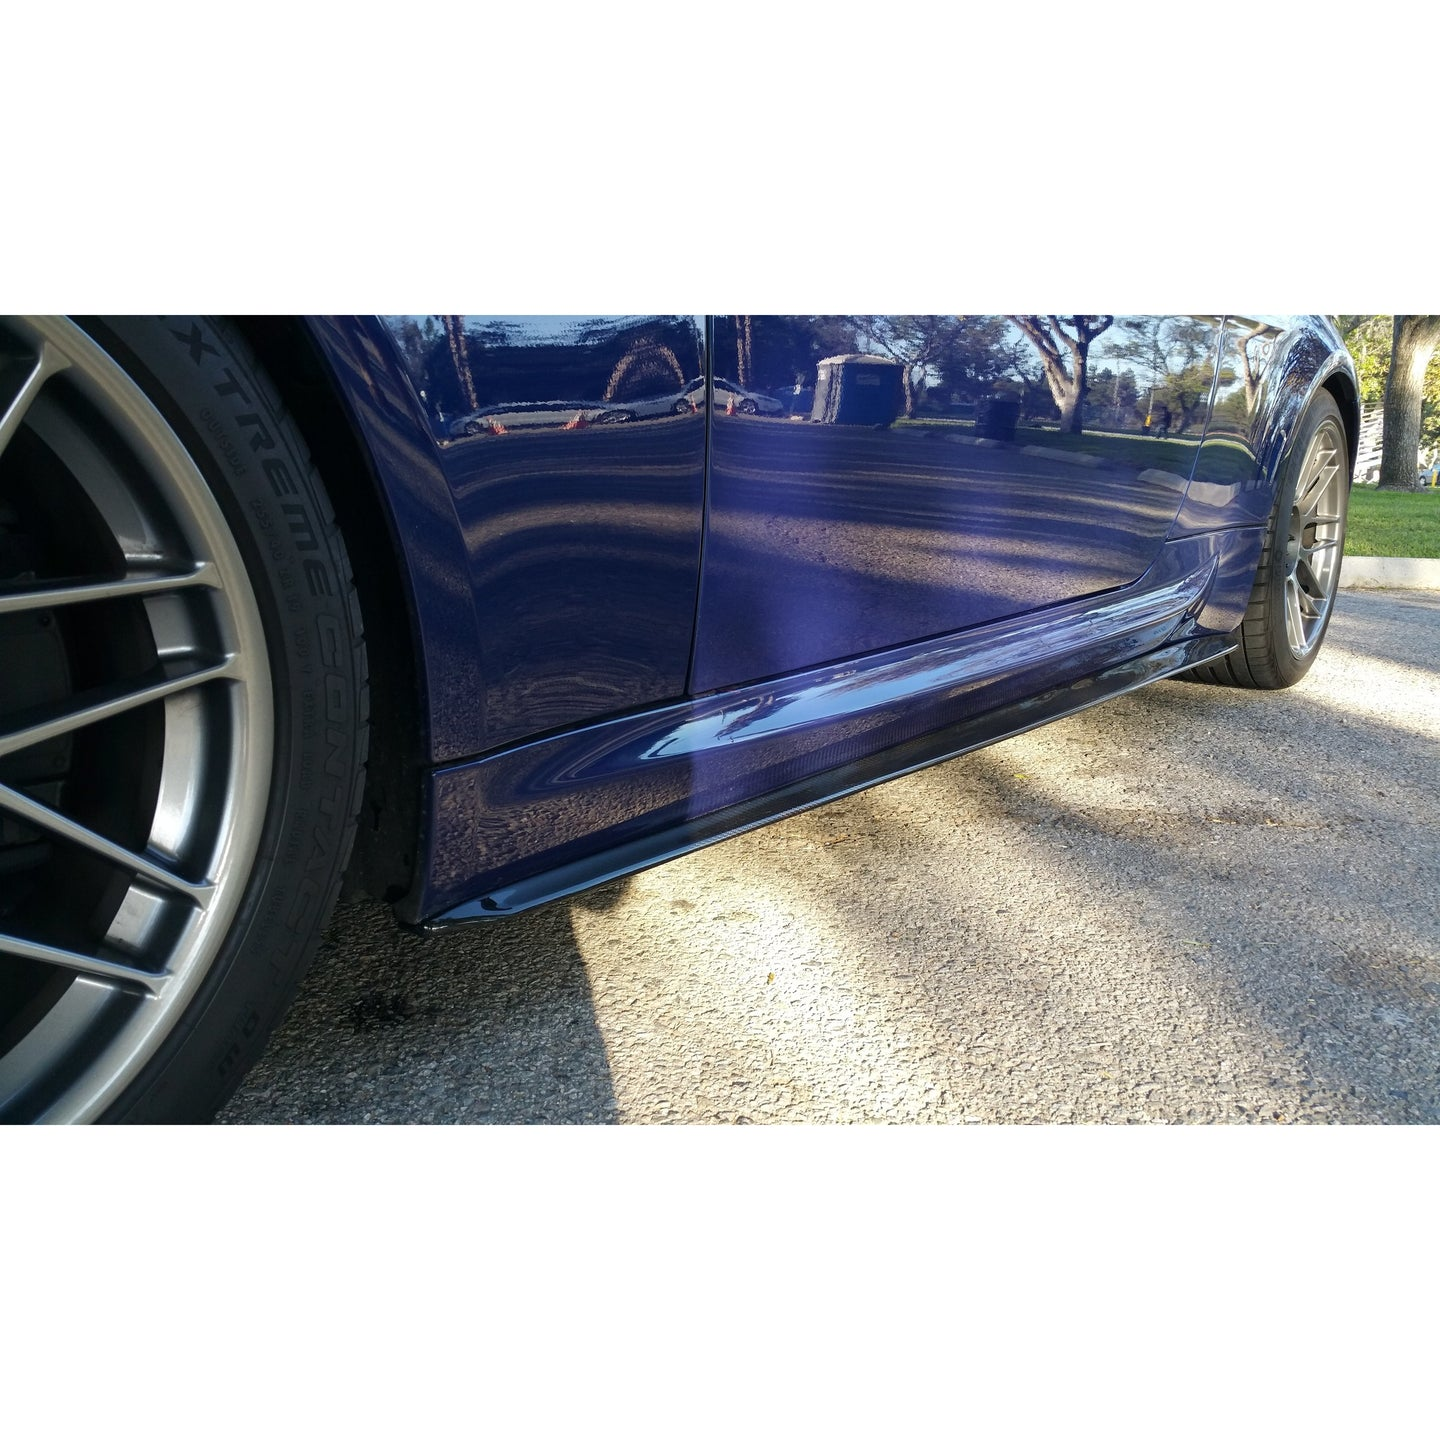 DINMANN BMW E63 M6 CARBON FIBER SIDE SKIRT EXTENSIONS - AEUROPLUG